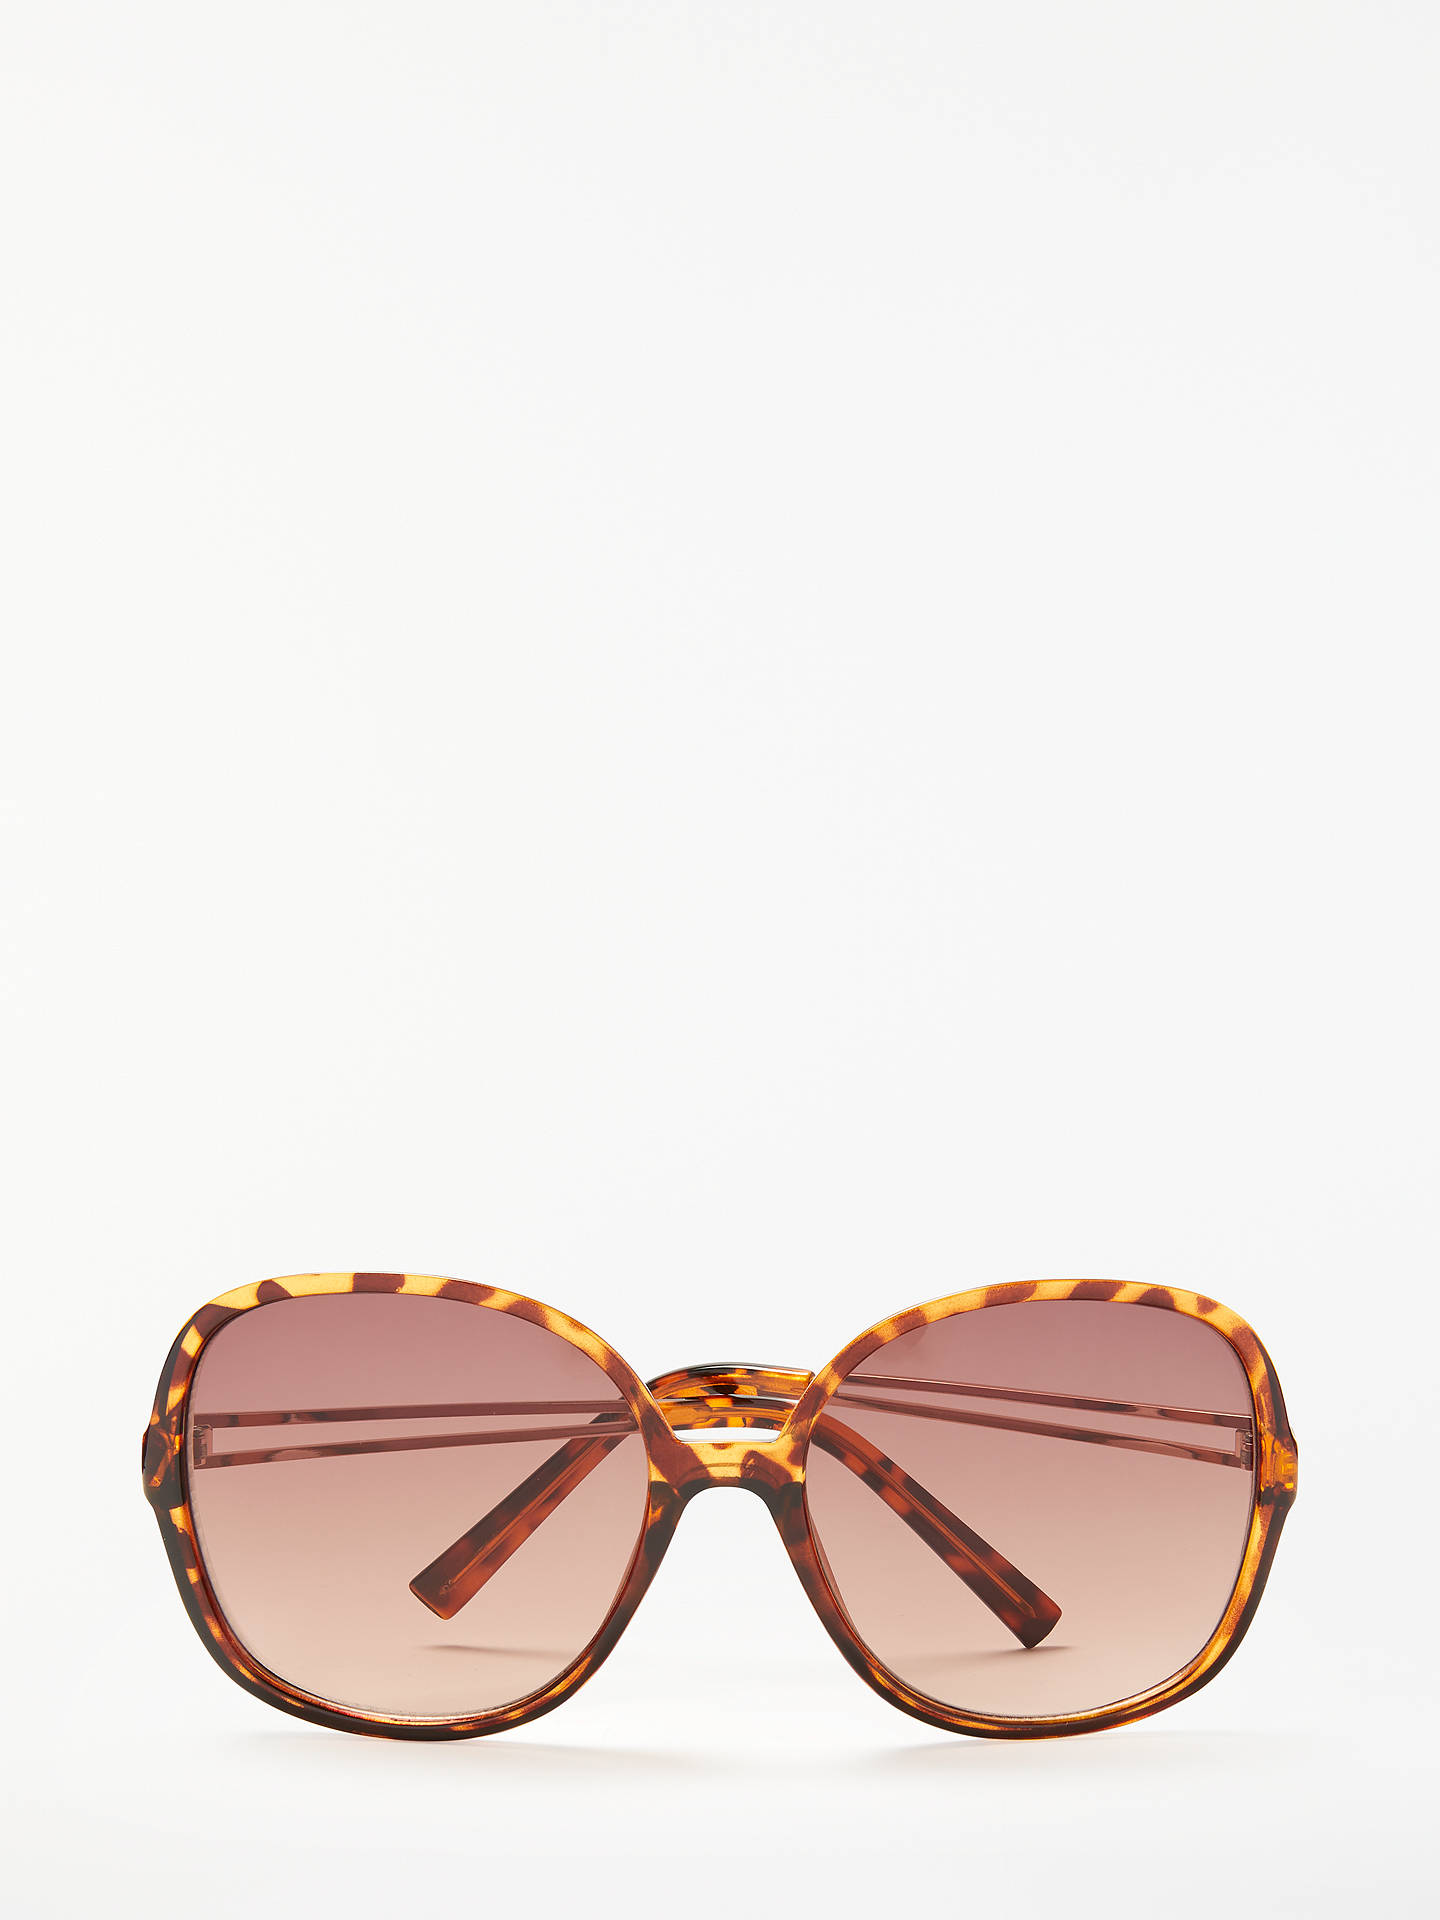 BuyJohn Lewis & Partners Metal Detail Square Sunglasses, Tortoise/Brown Gradient Online at johnlewis.com